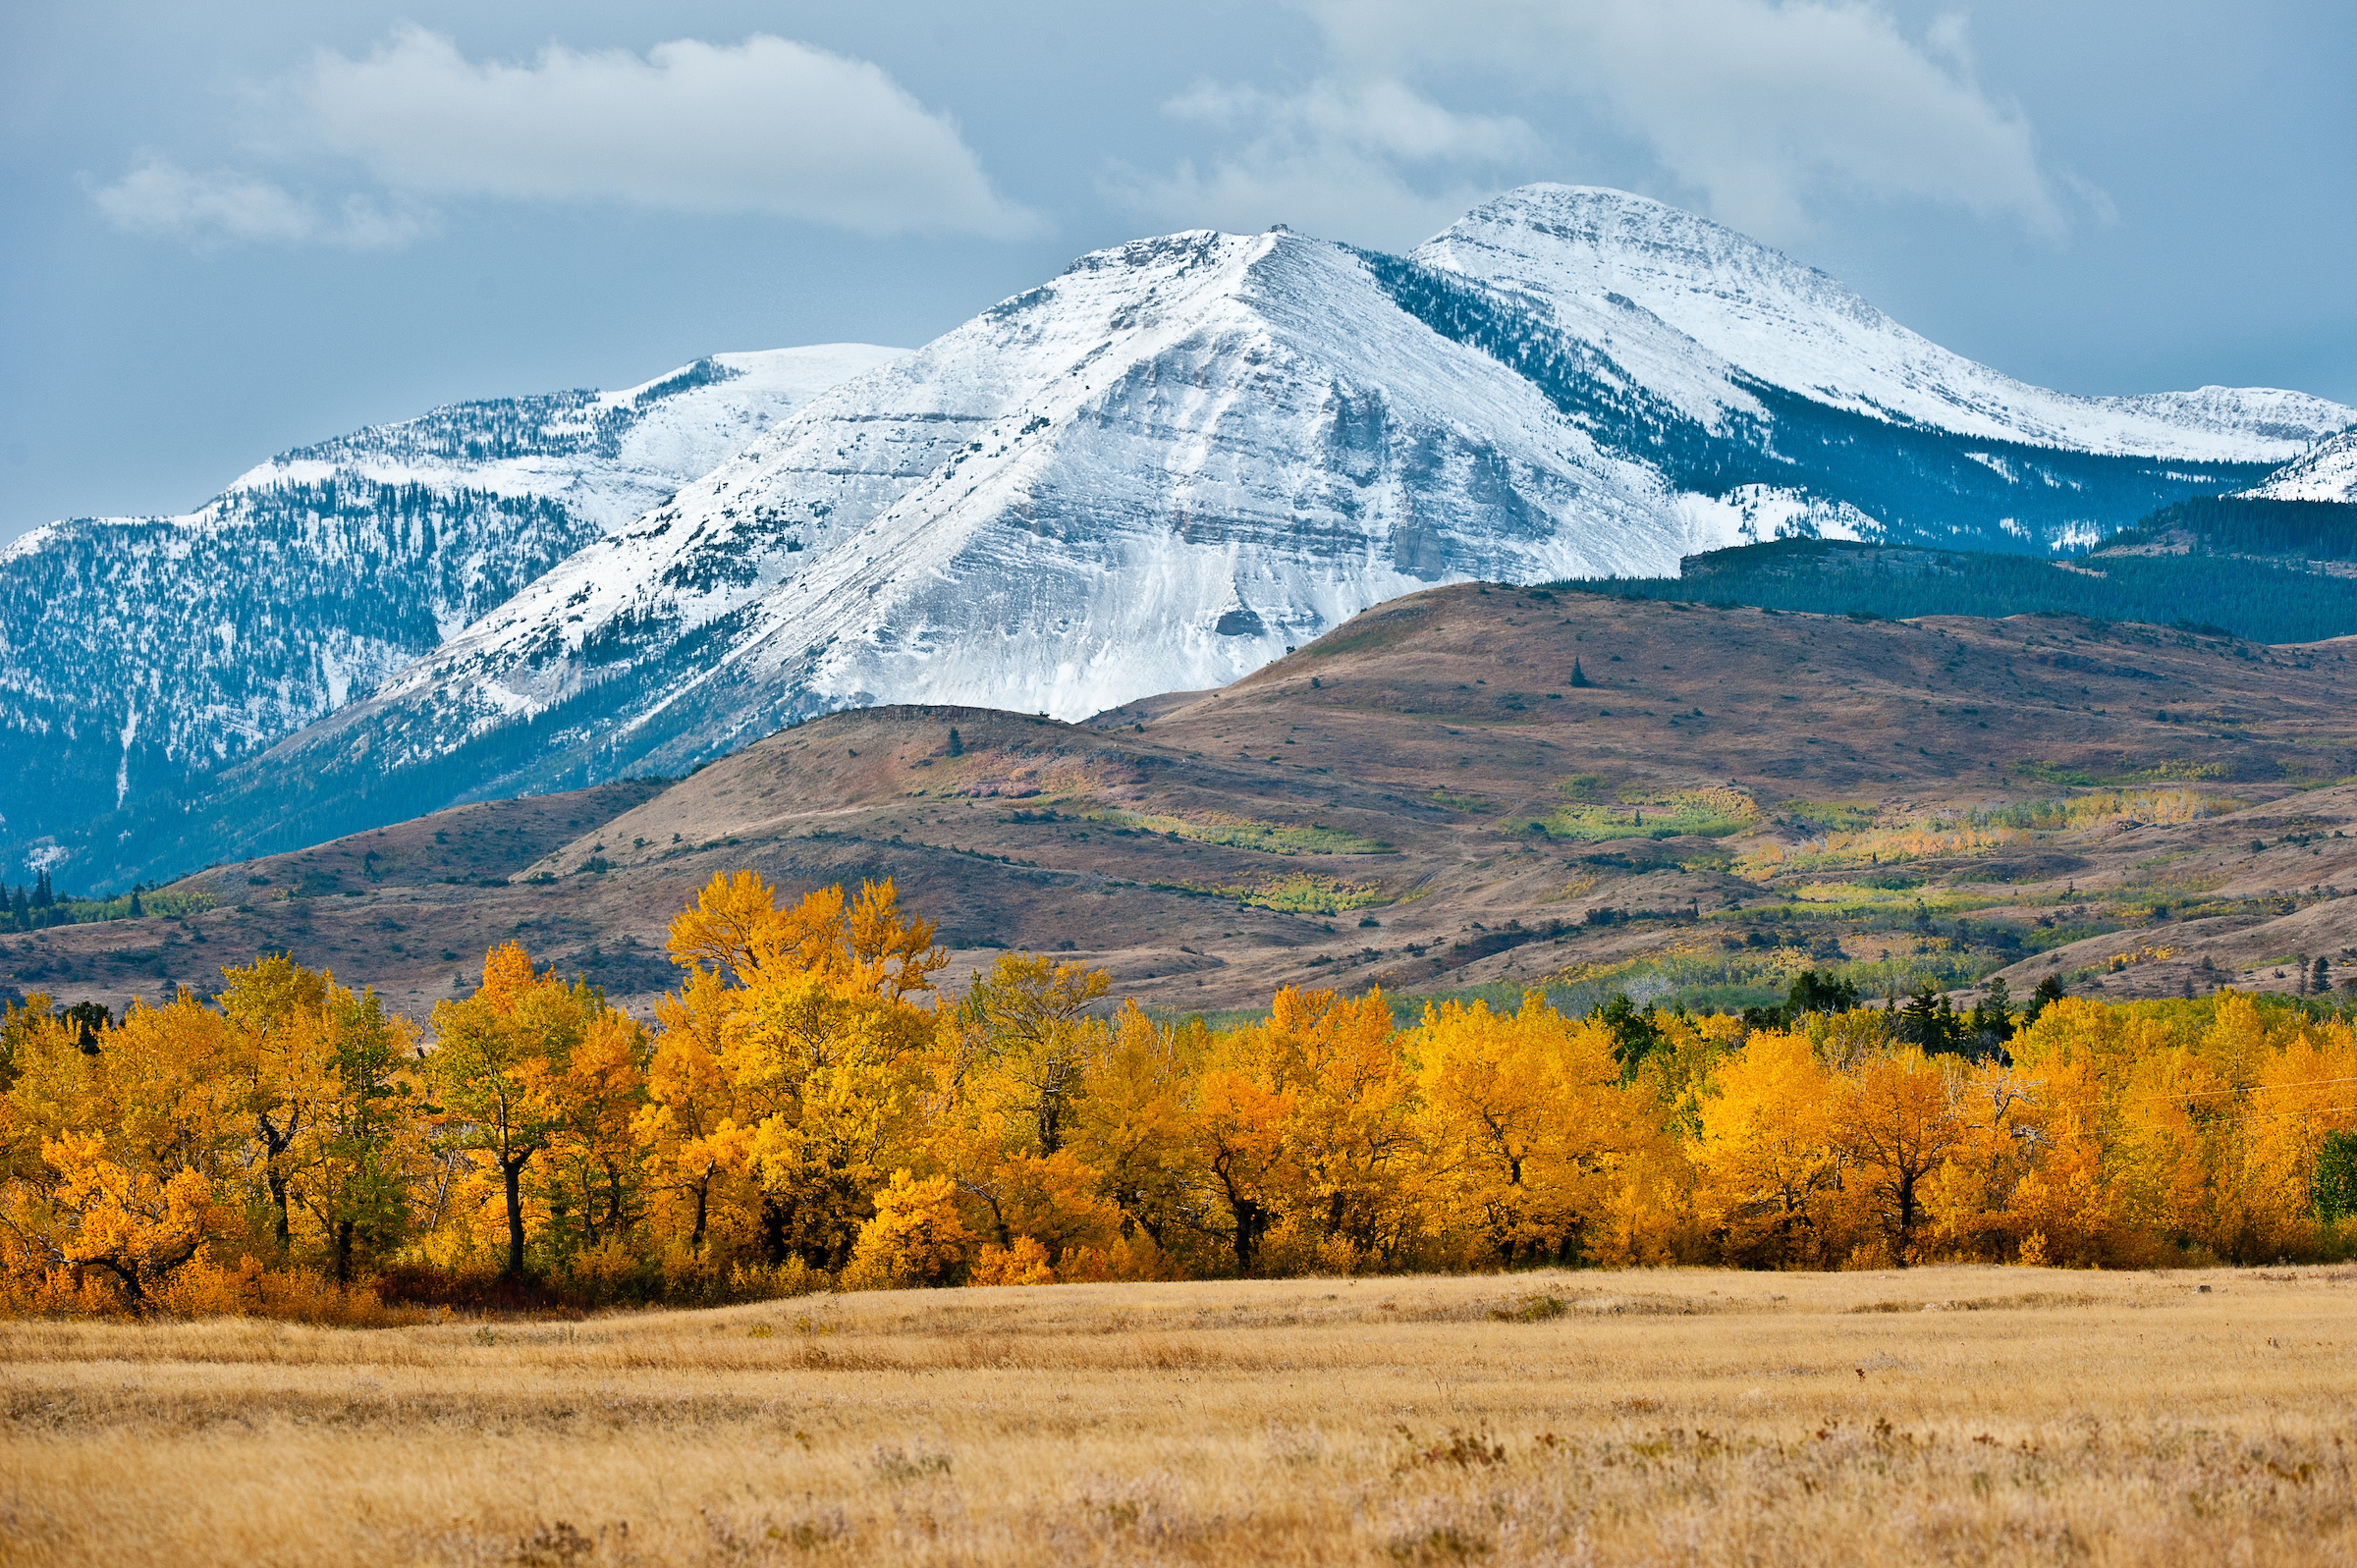 Fall colors in the Badger Two Medicine, Blackfeet Indian Reservation, Montana.